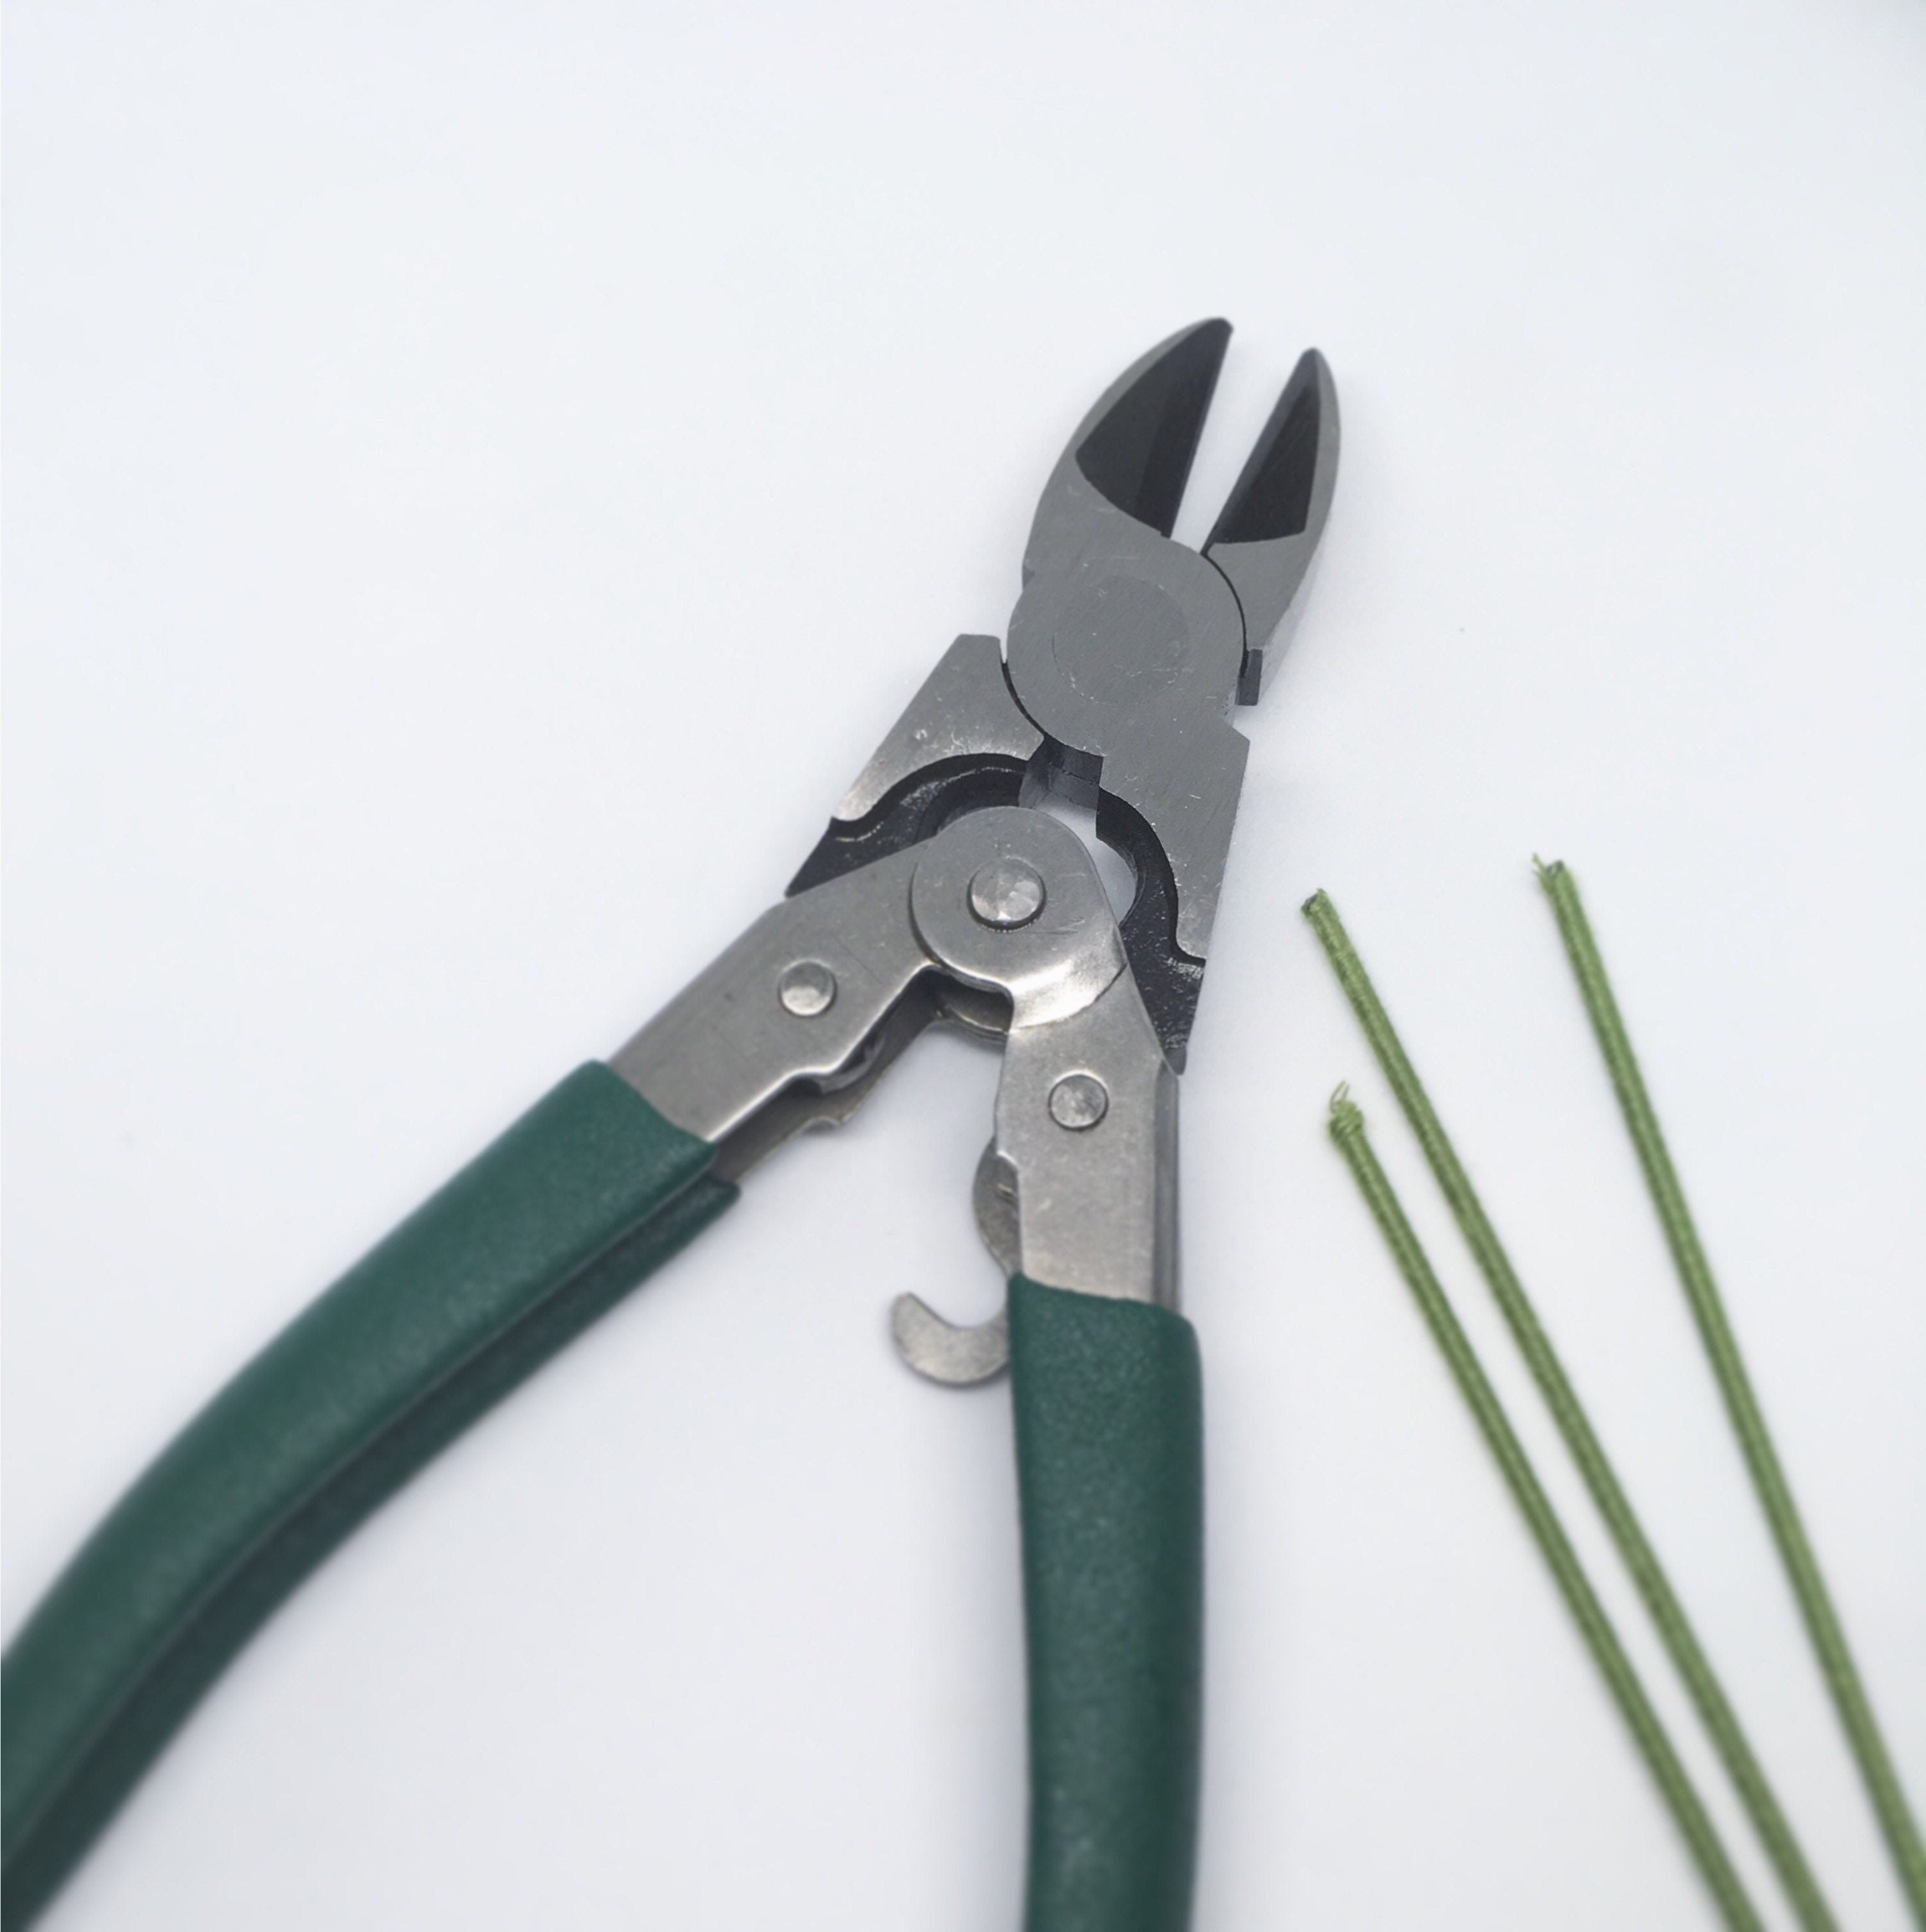 Floral wire cutters, snips, wire snippers, flower cutter, florist ...